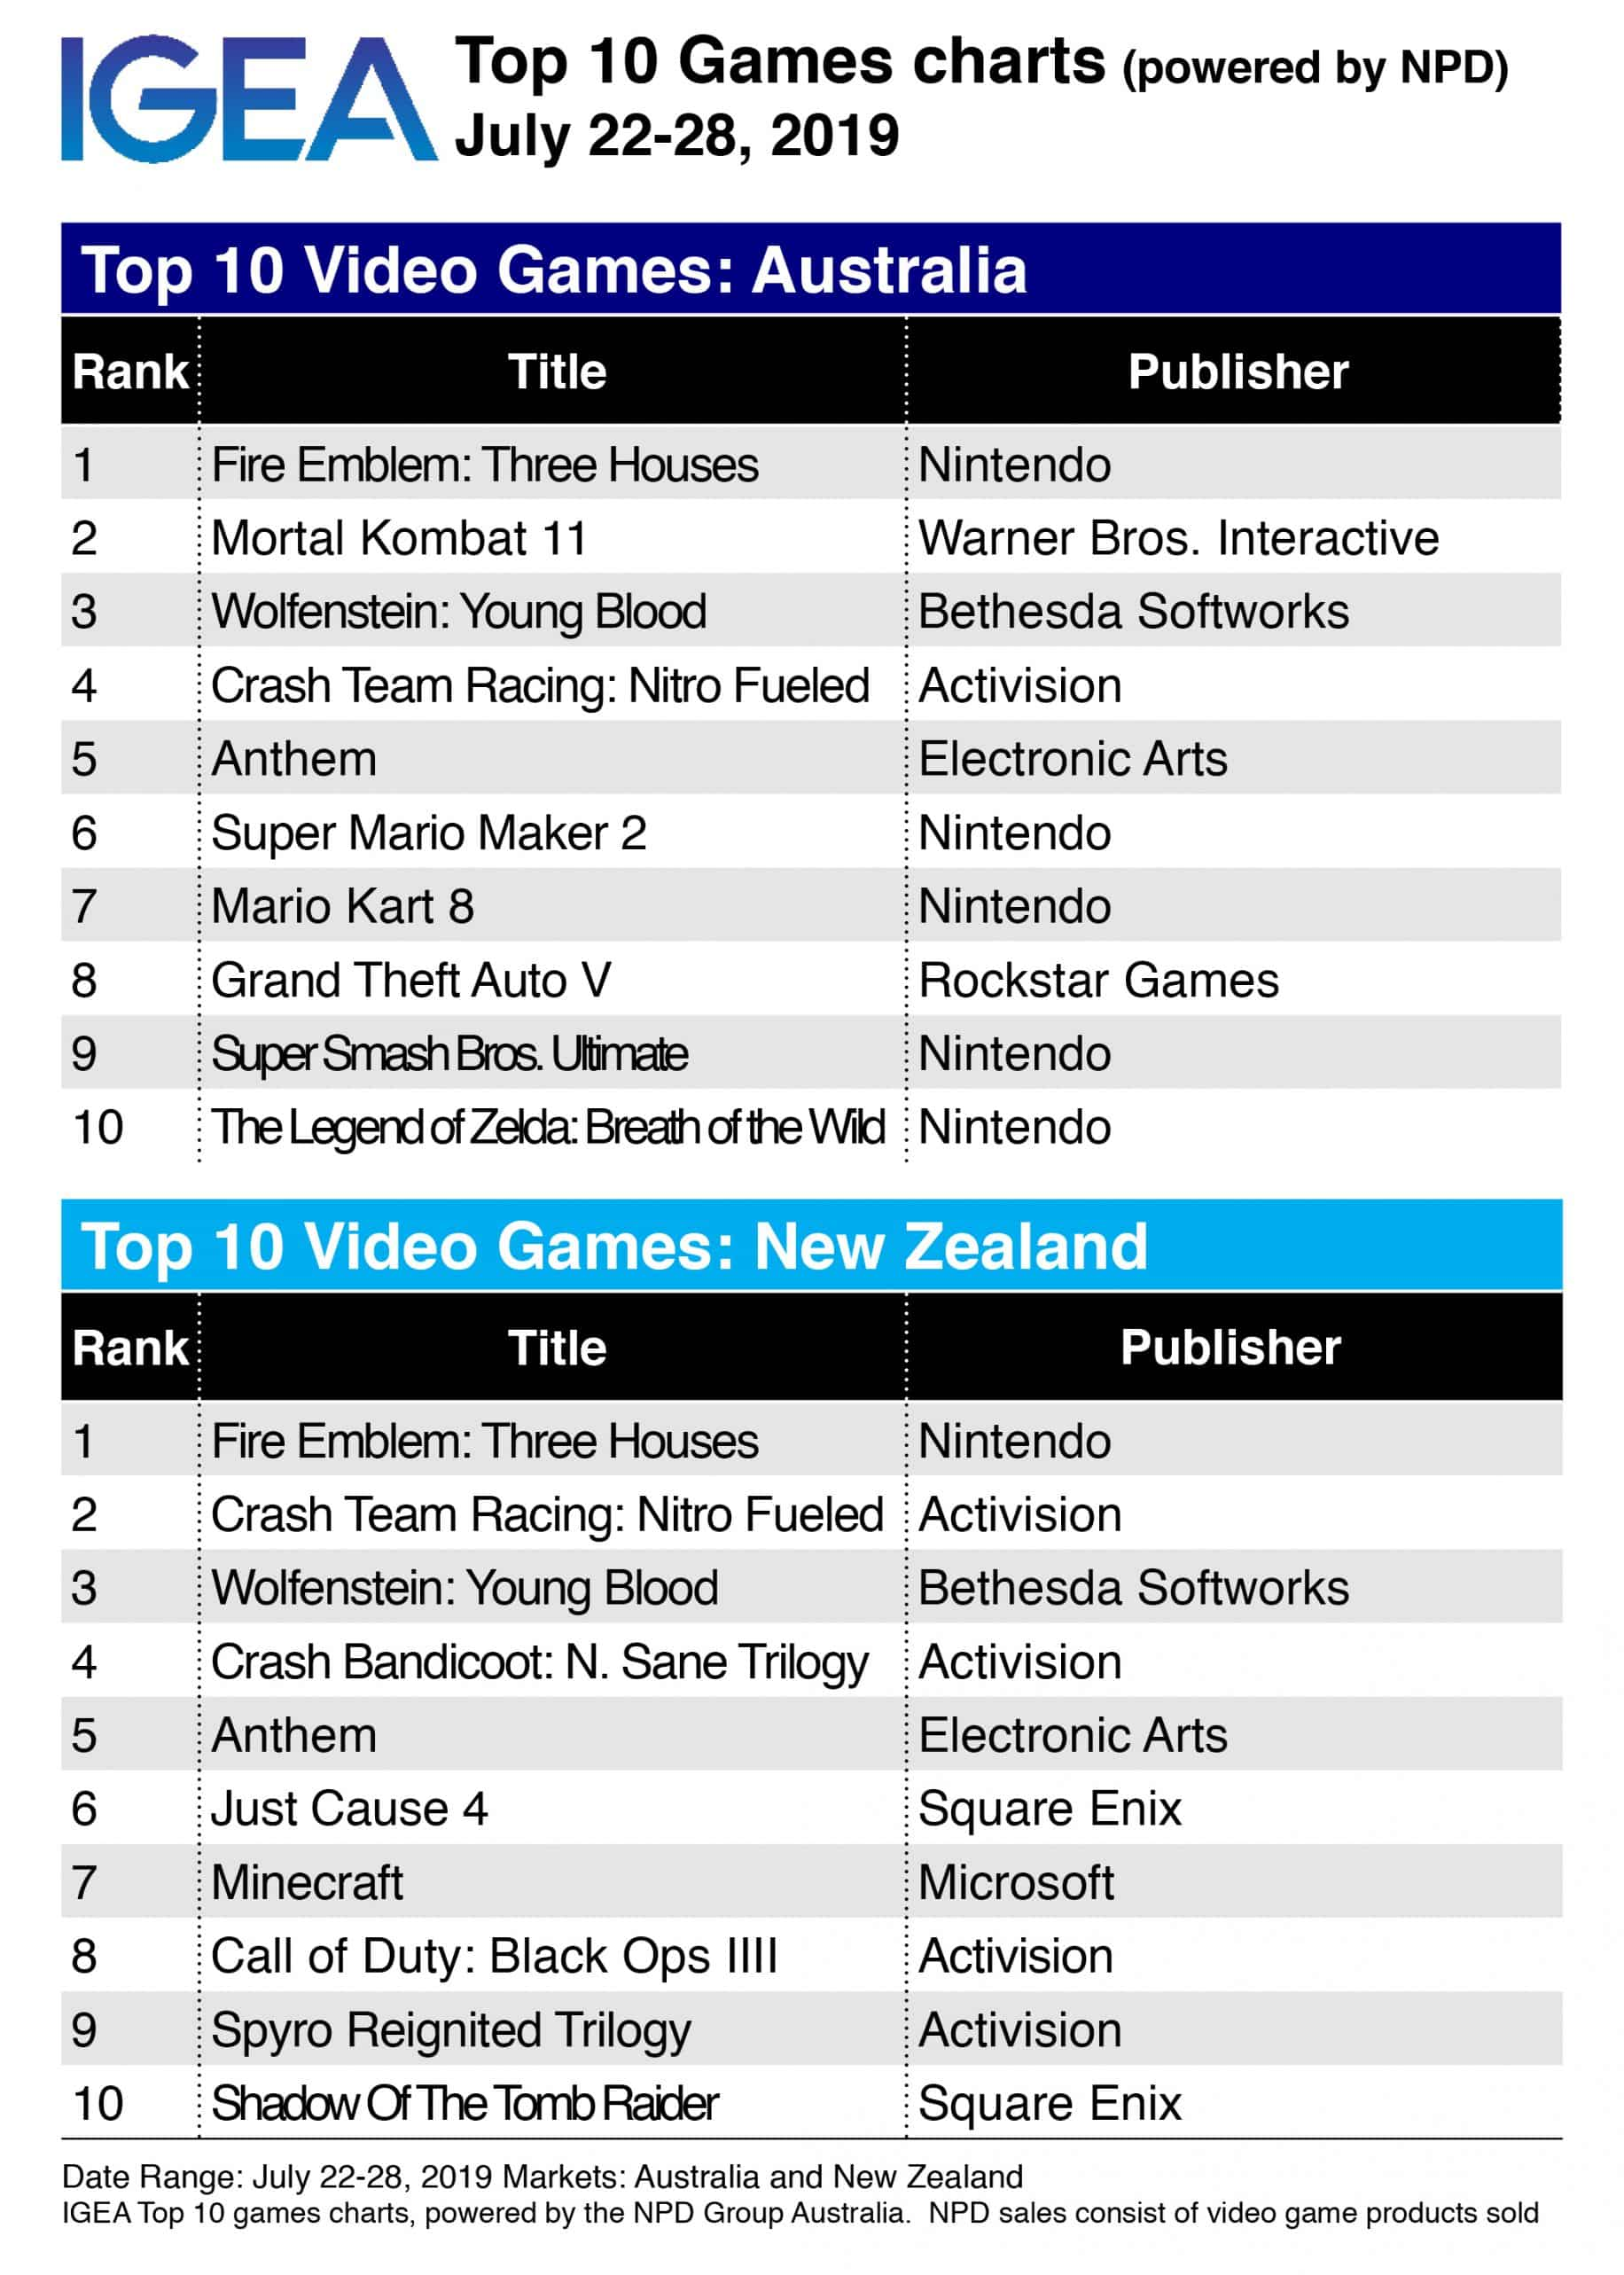 Top 10 Game Charts: Nintendo's Fire Emblem torches the